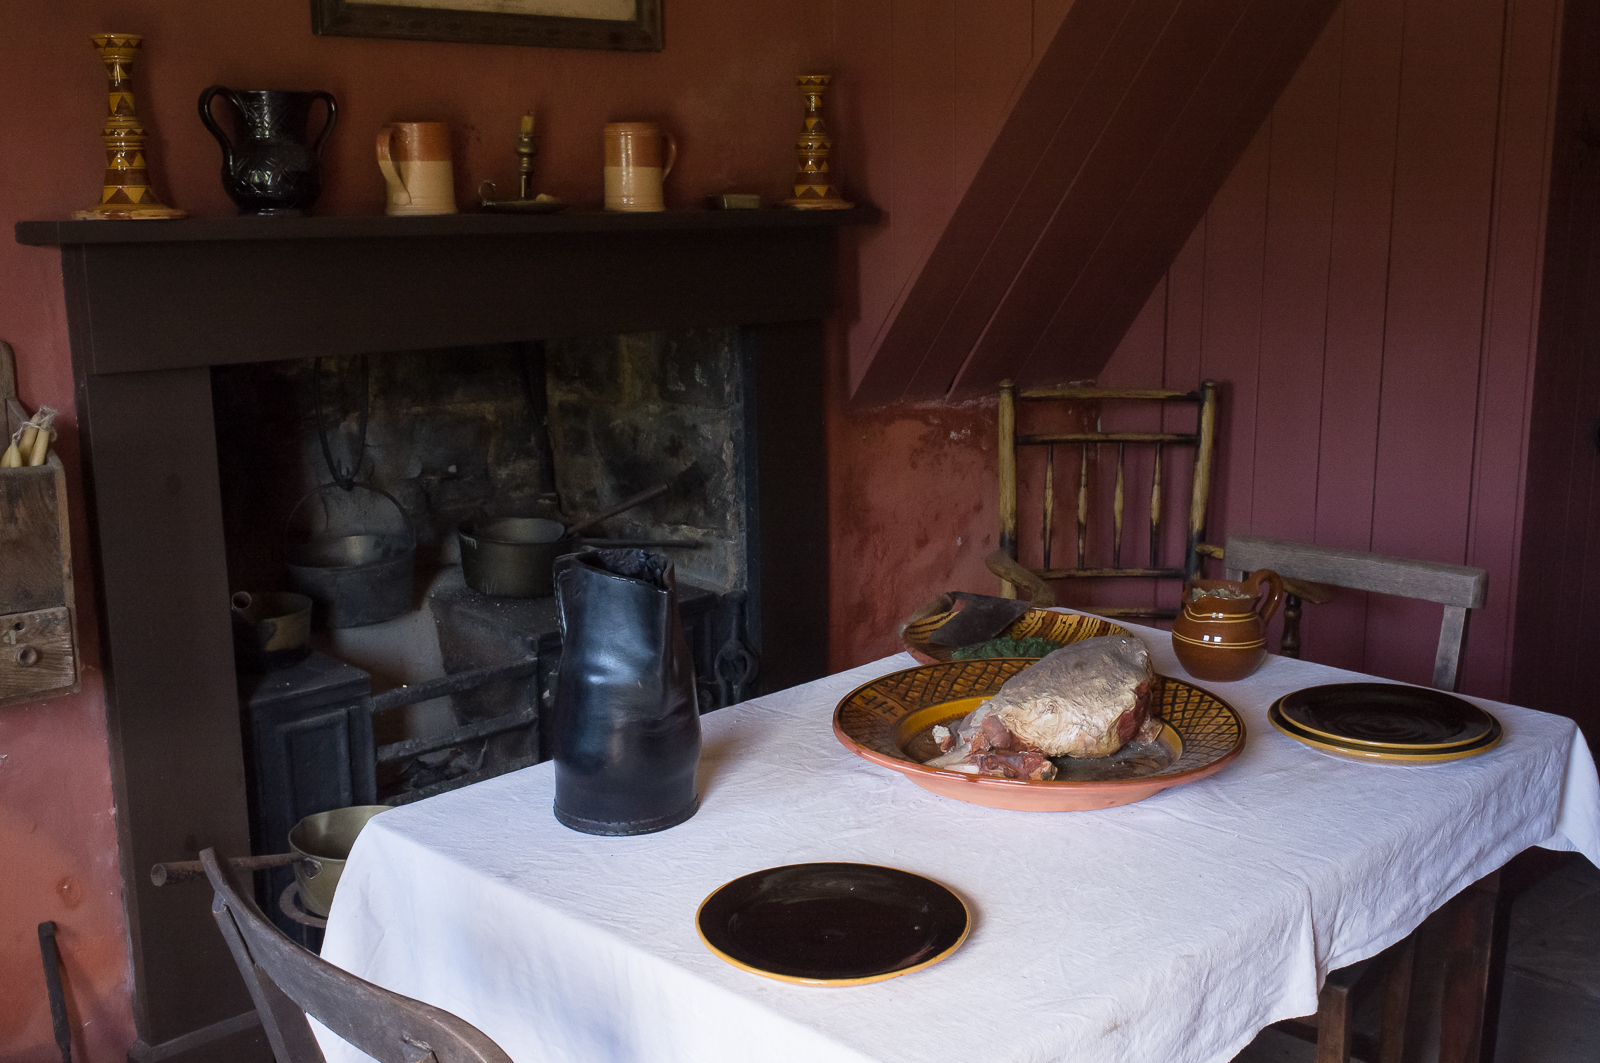 Replica of cottage interior (apartment) from 1790, Blaenavon - Wales